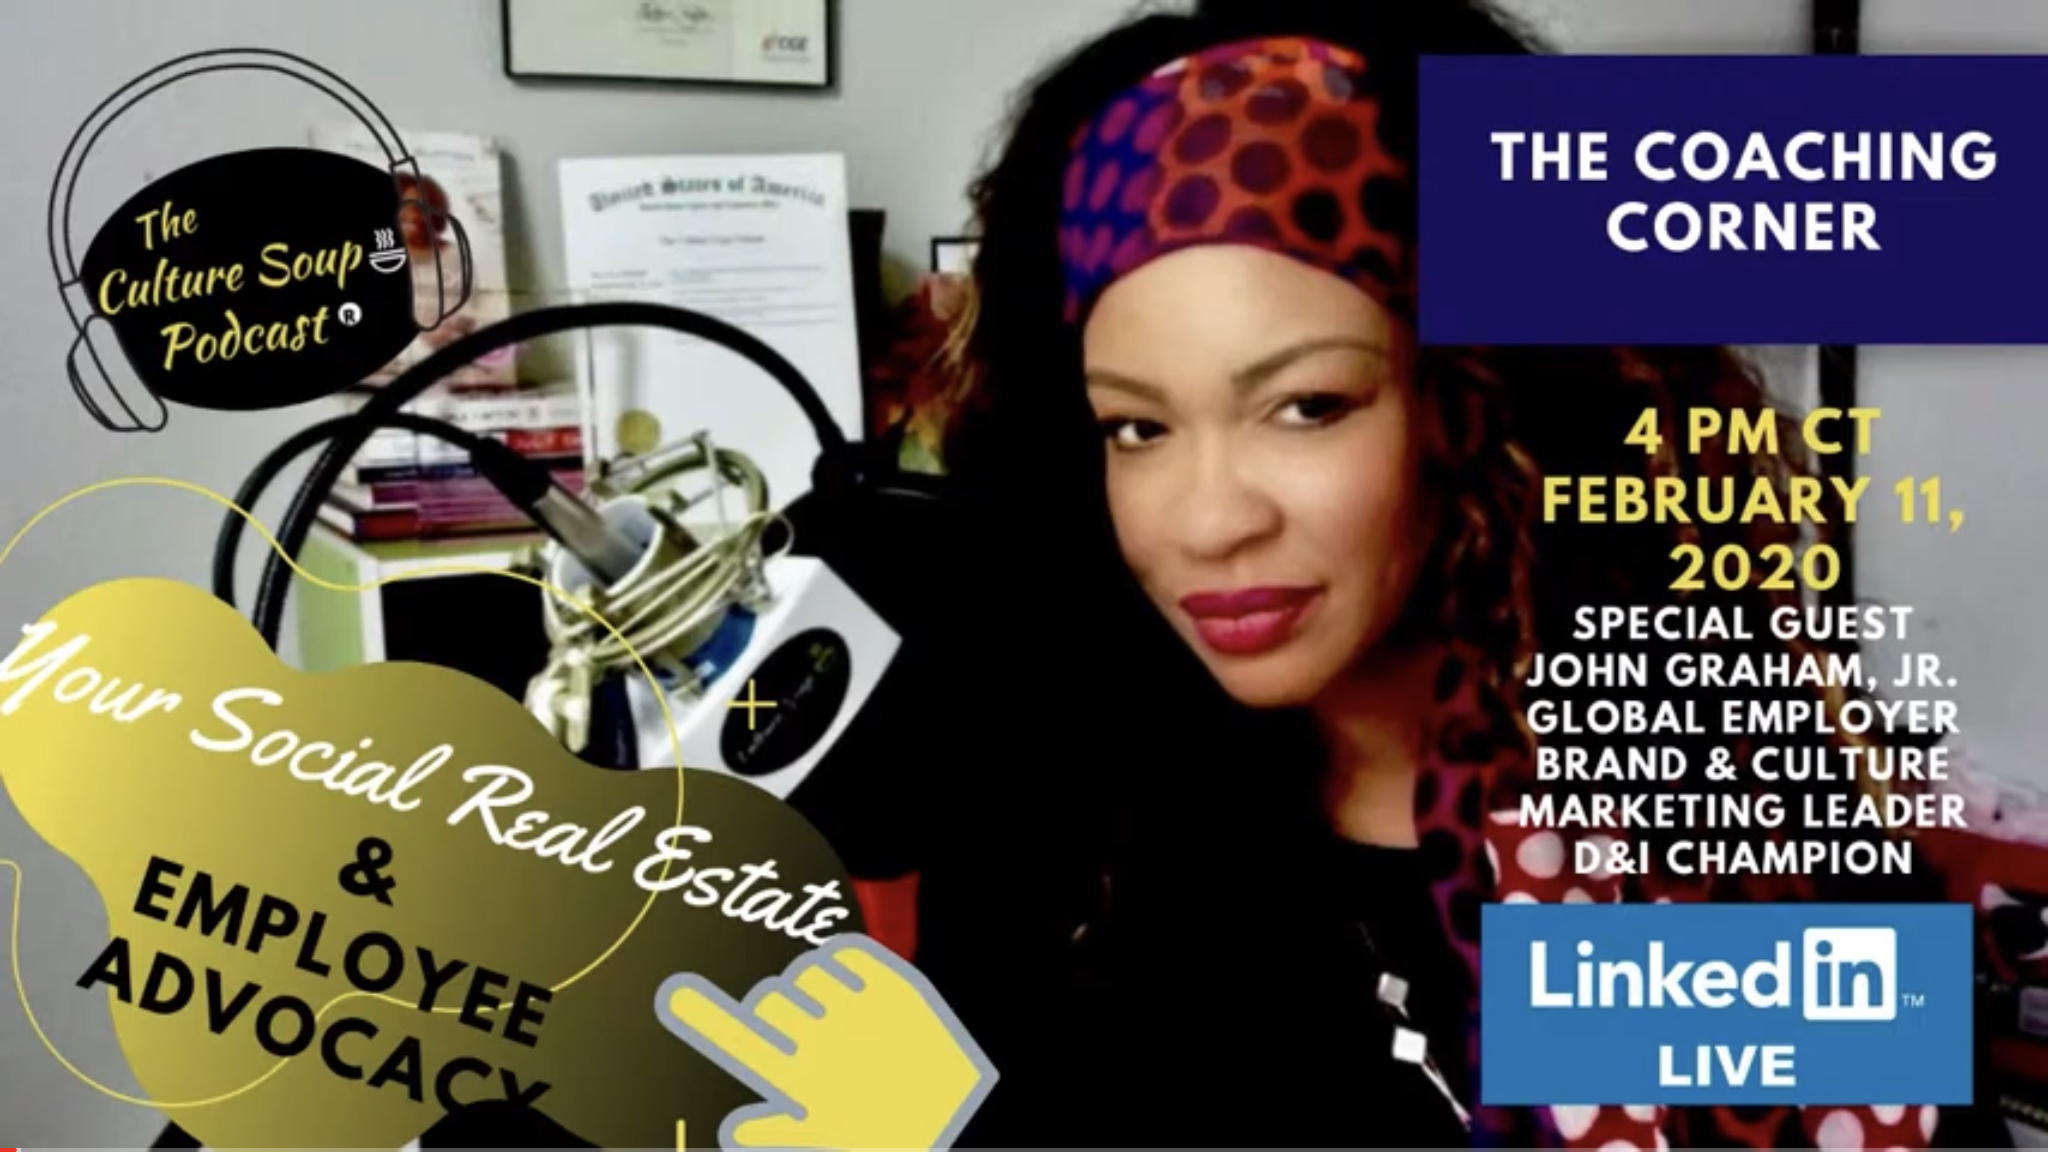 Ep 79: #TCSPCoachingCorner on #LinkedInLIVE